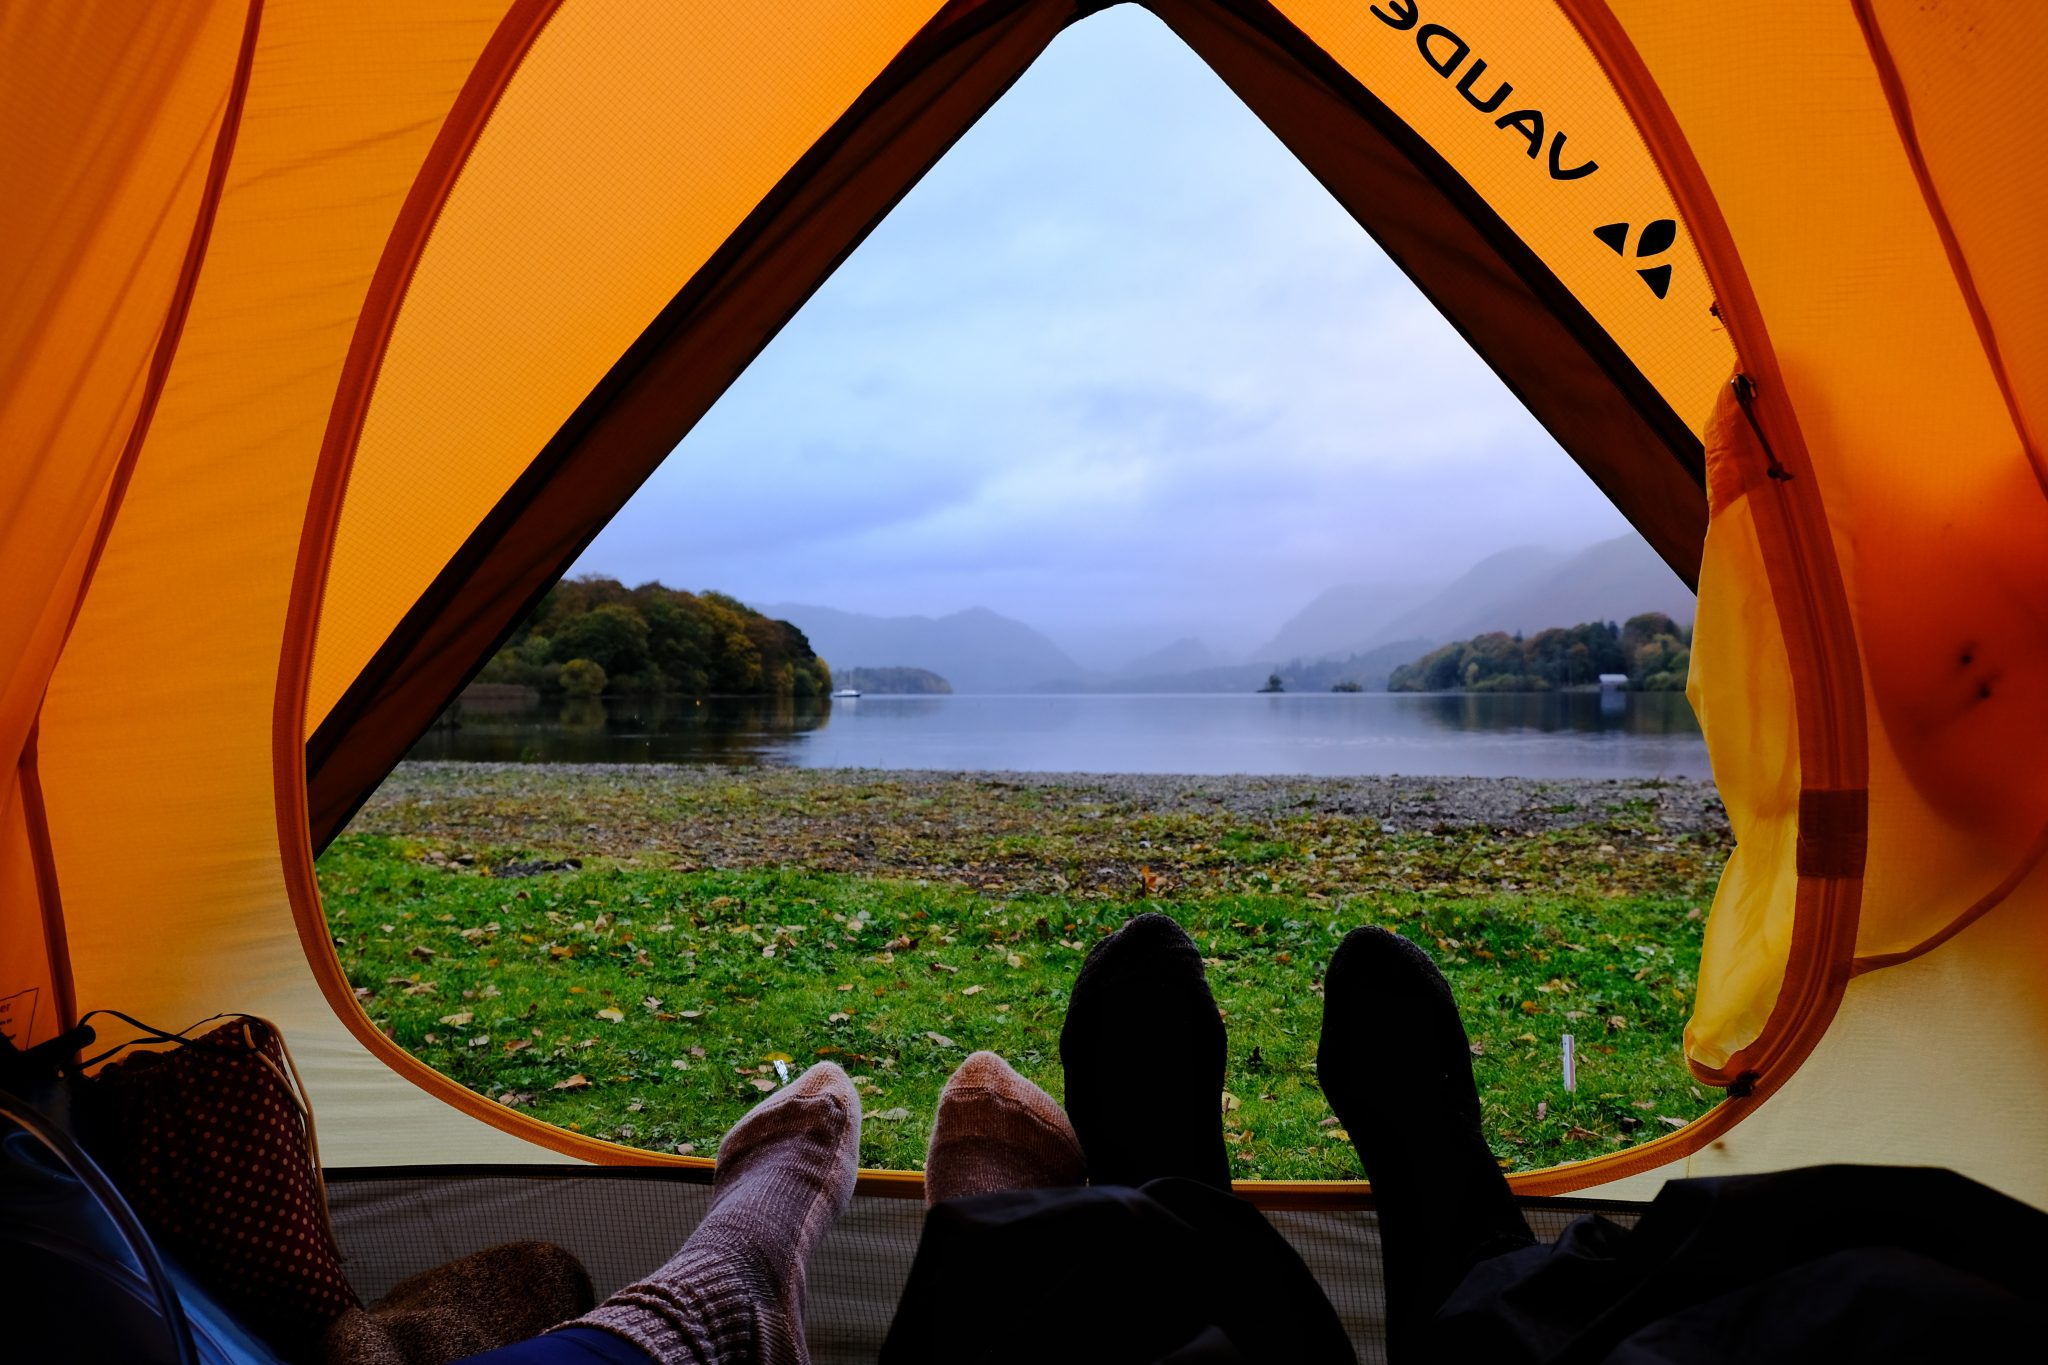 Couple camping in a tent overlooking a lake